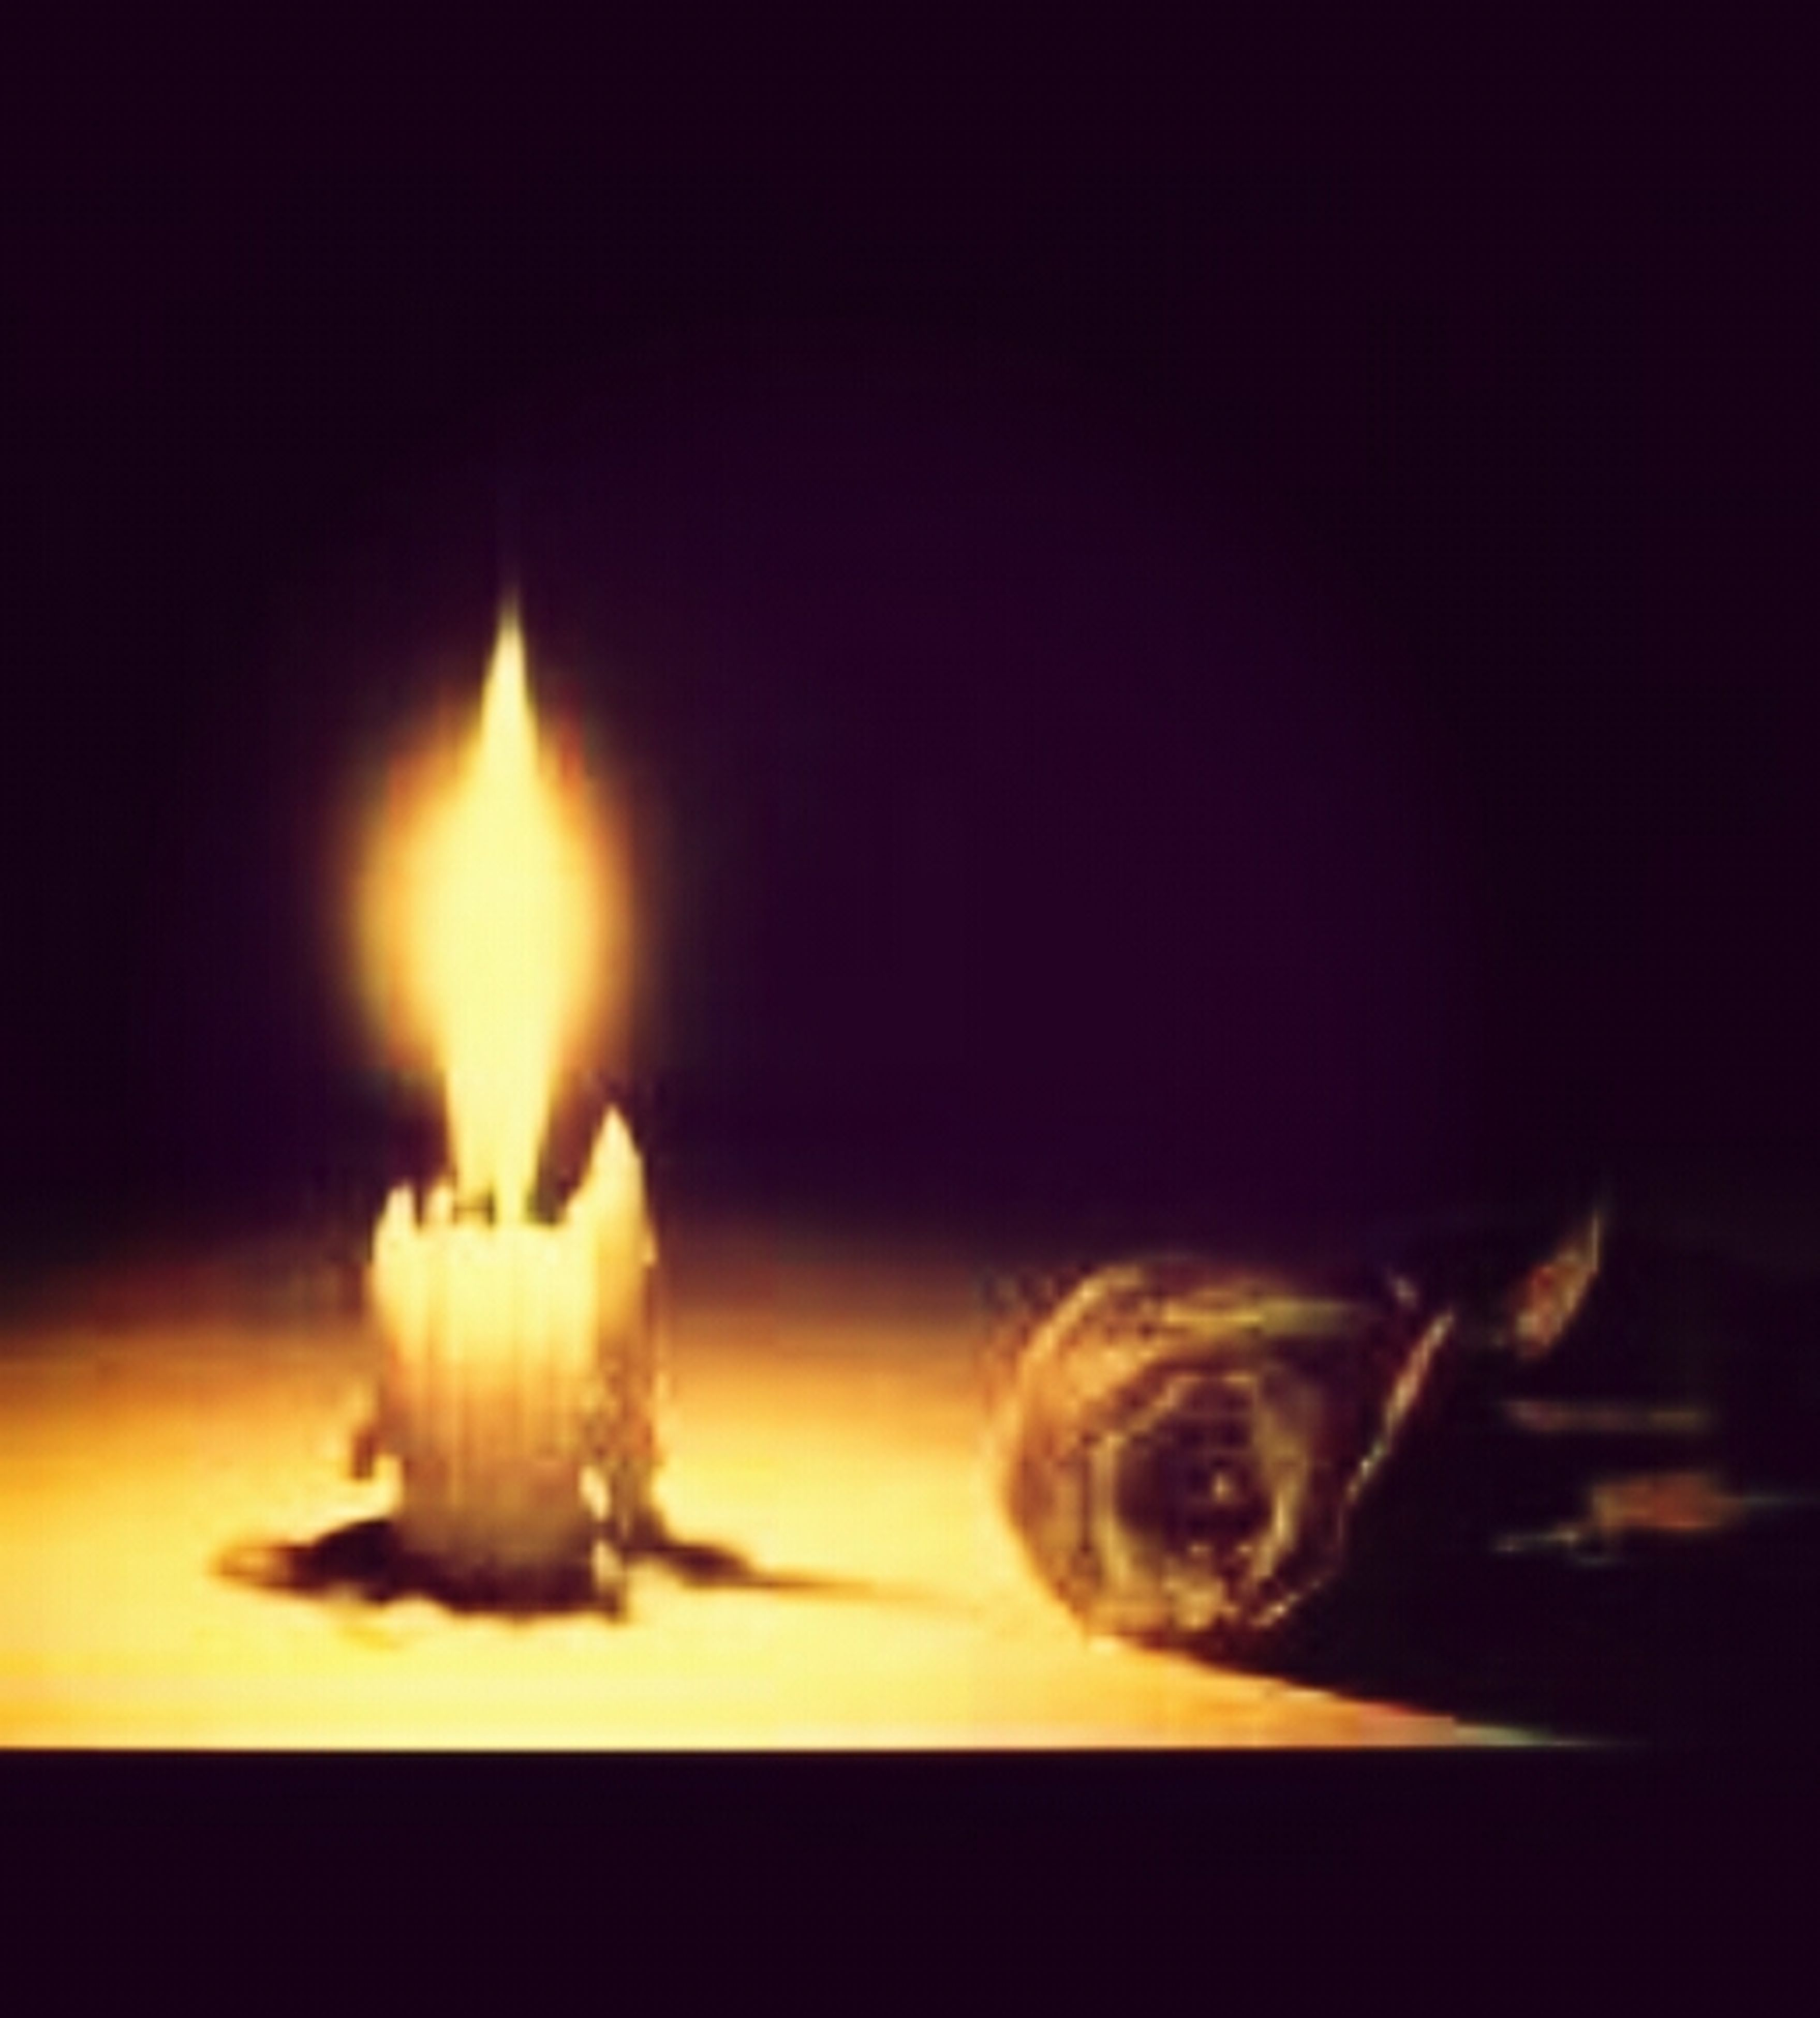 indoors, flame, burning, heat - temperature, candle, fire - natural phenomenon, close-up, glowing, black background, still life, lit, candlelight, illuminated, studio shot, dark, darkroom, selective focus, no people, fire, table